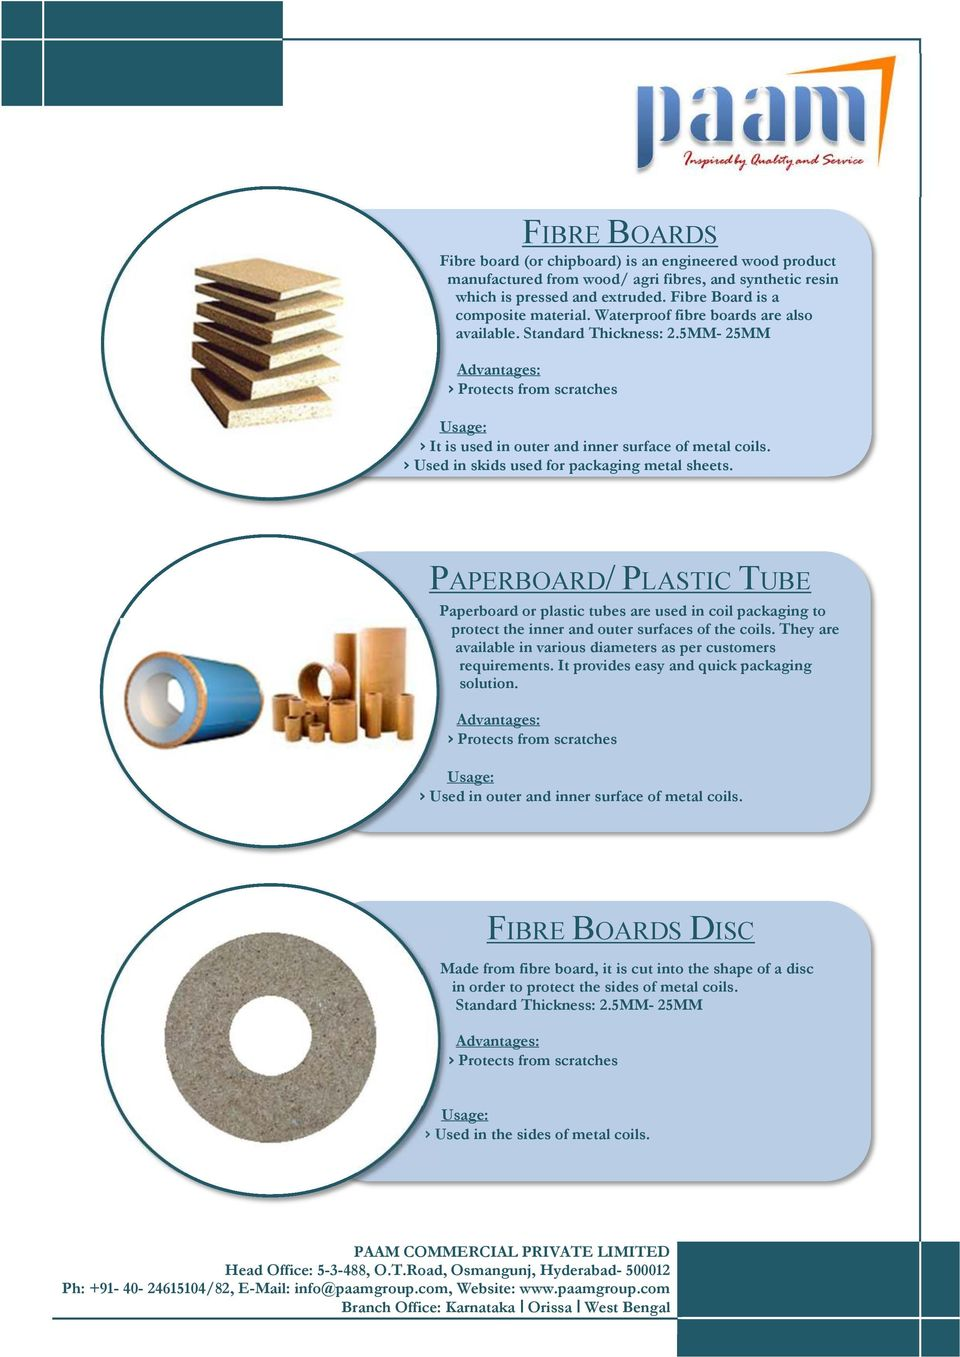 5MM- 25MM Protects from scratches PAPERBOARD/ PLASTIC TUBE Paperboard or plastic tubes are used in coil packaging to protect the inner and outer surfaces of the coils.